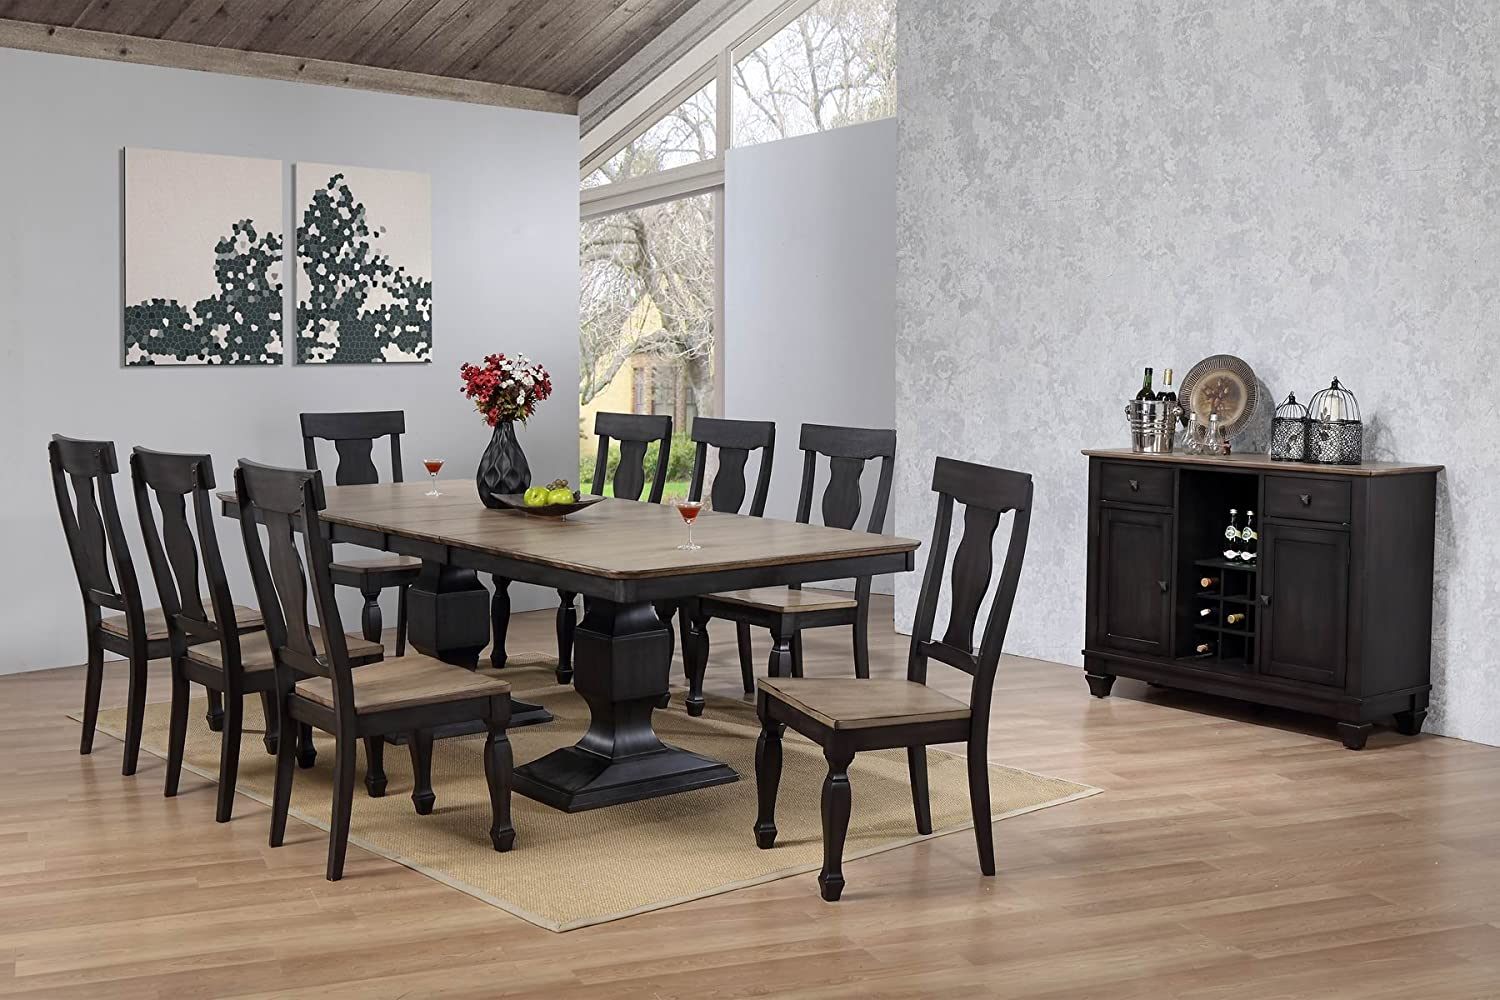 Kings Brand Alleyton 10 Piece Charcoal Oak Wood Dining Room Set, Table, 8 Chairs & Buffet Server